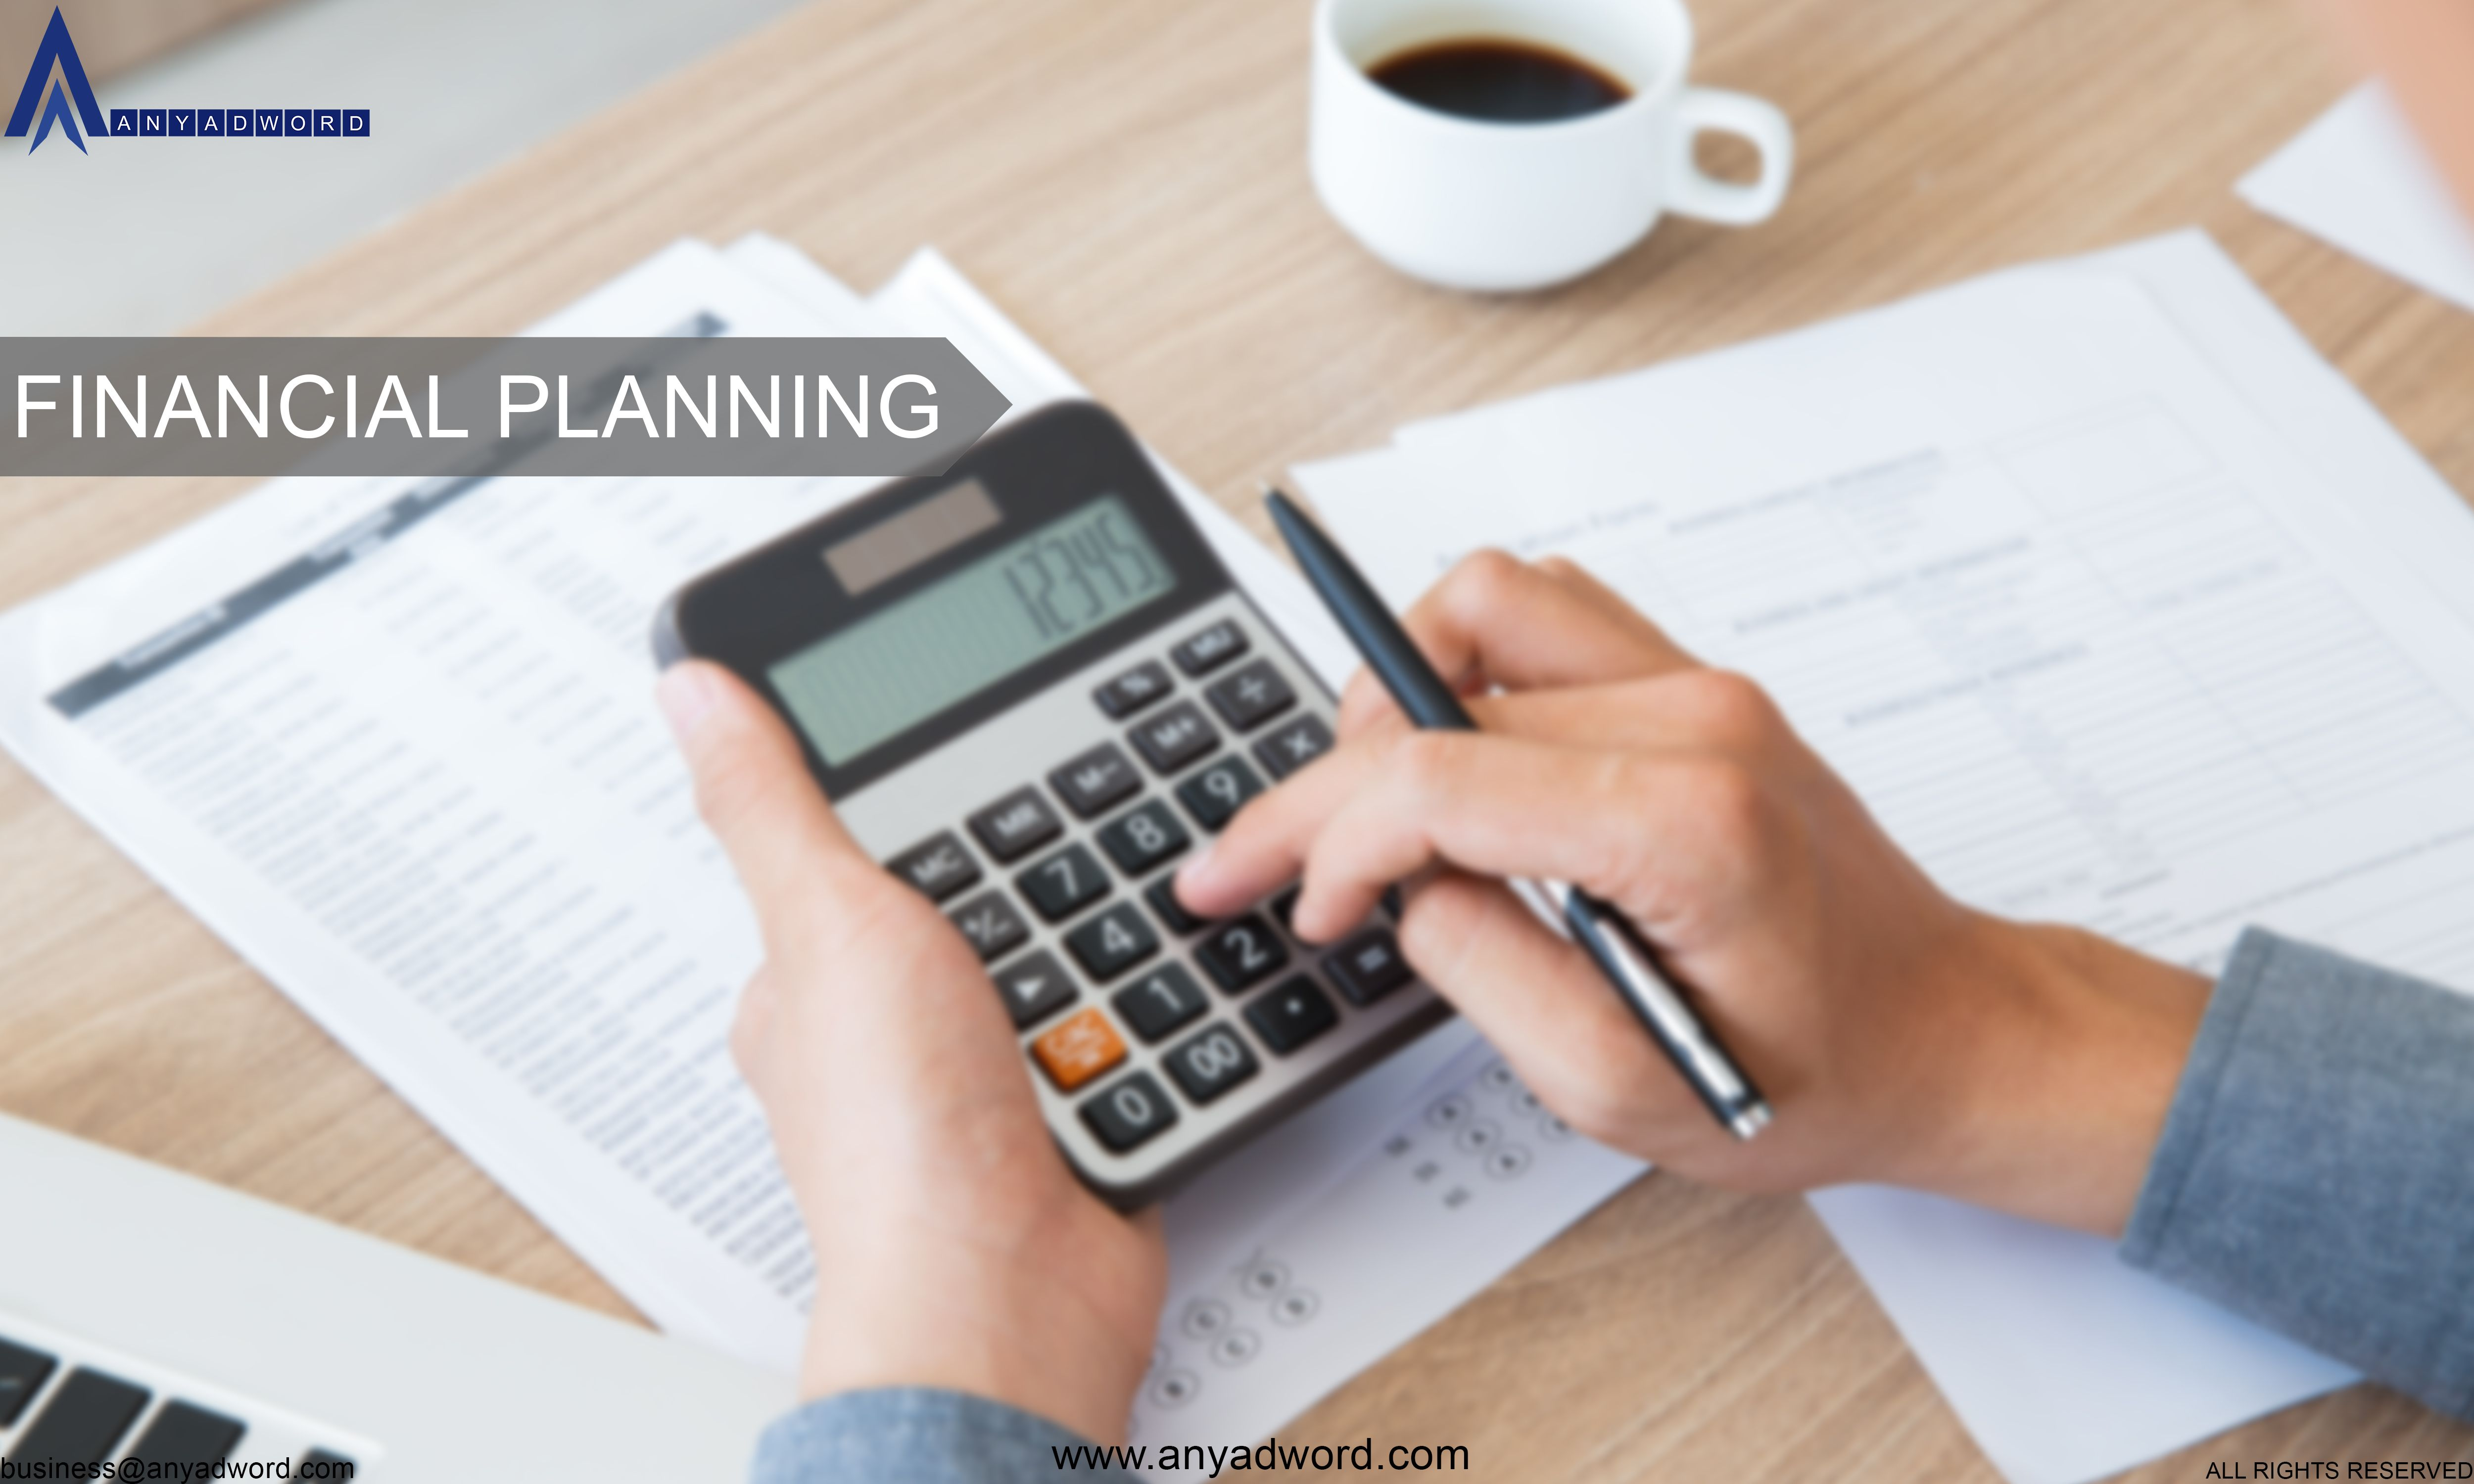 Pin by AnyAdword on Financial Planning services